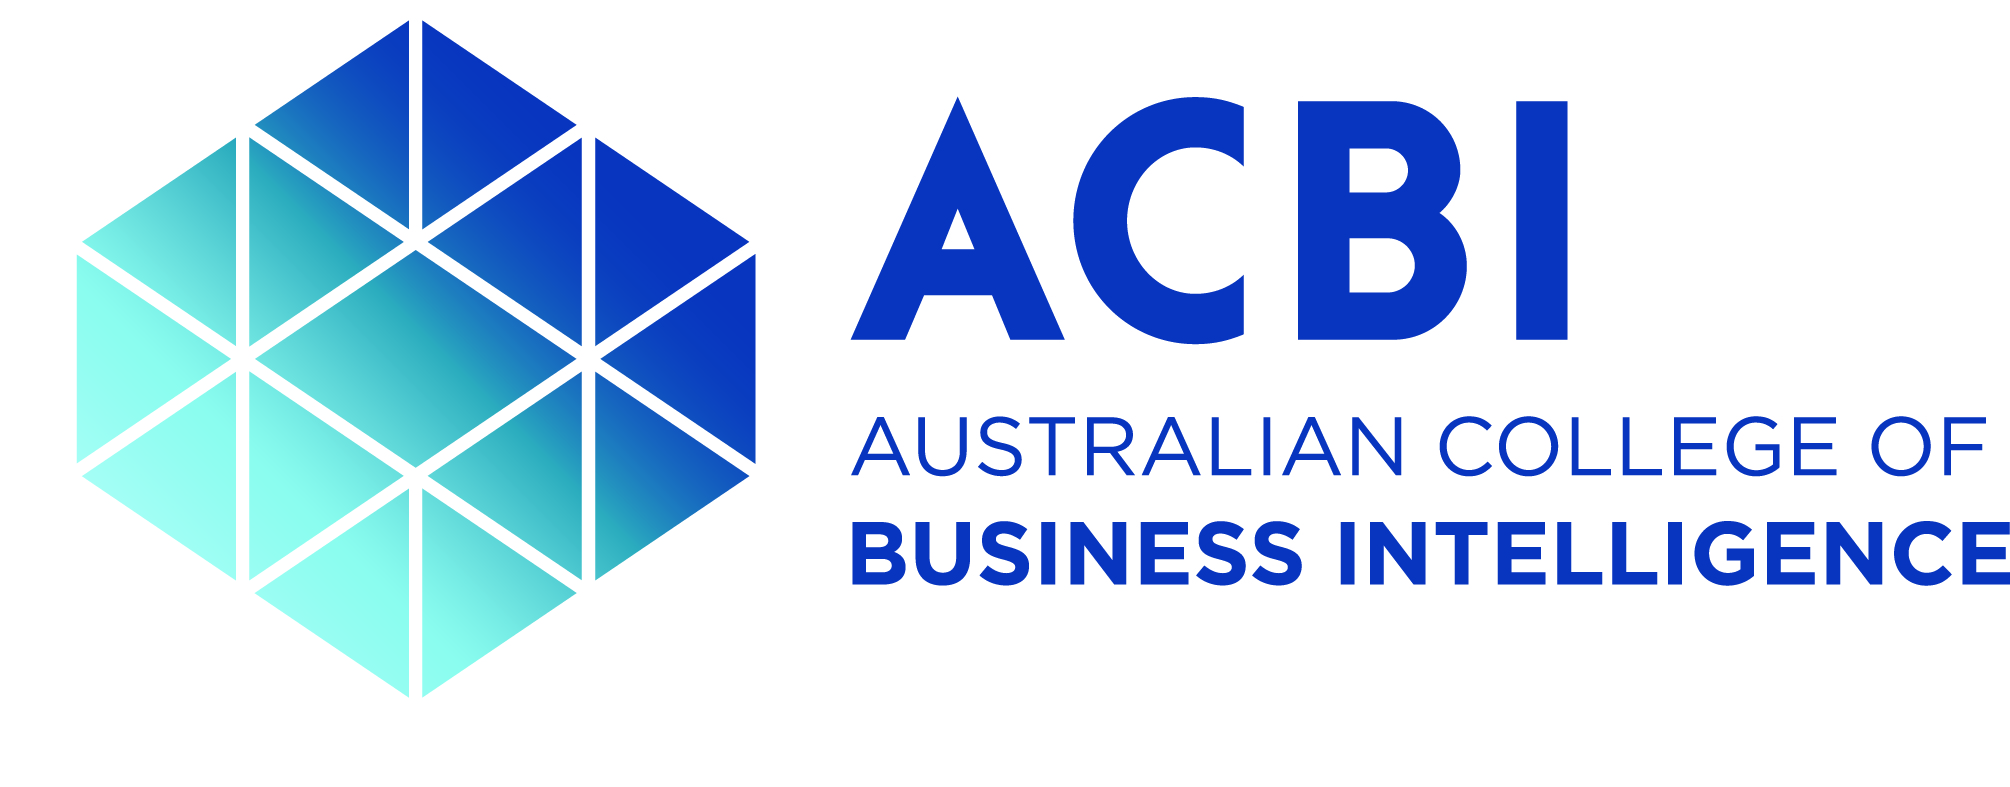 Australian College of Business Intelligence